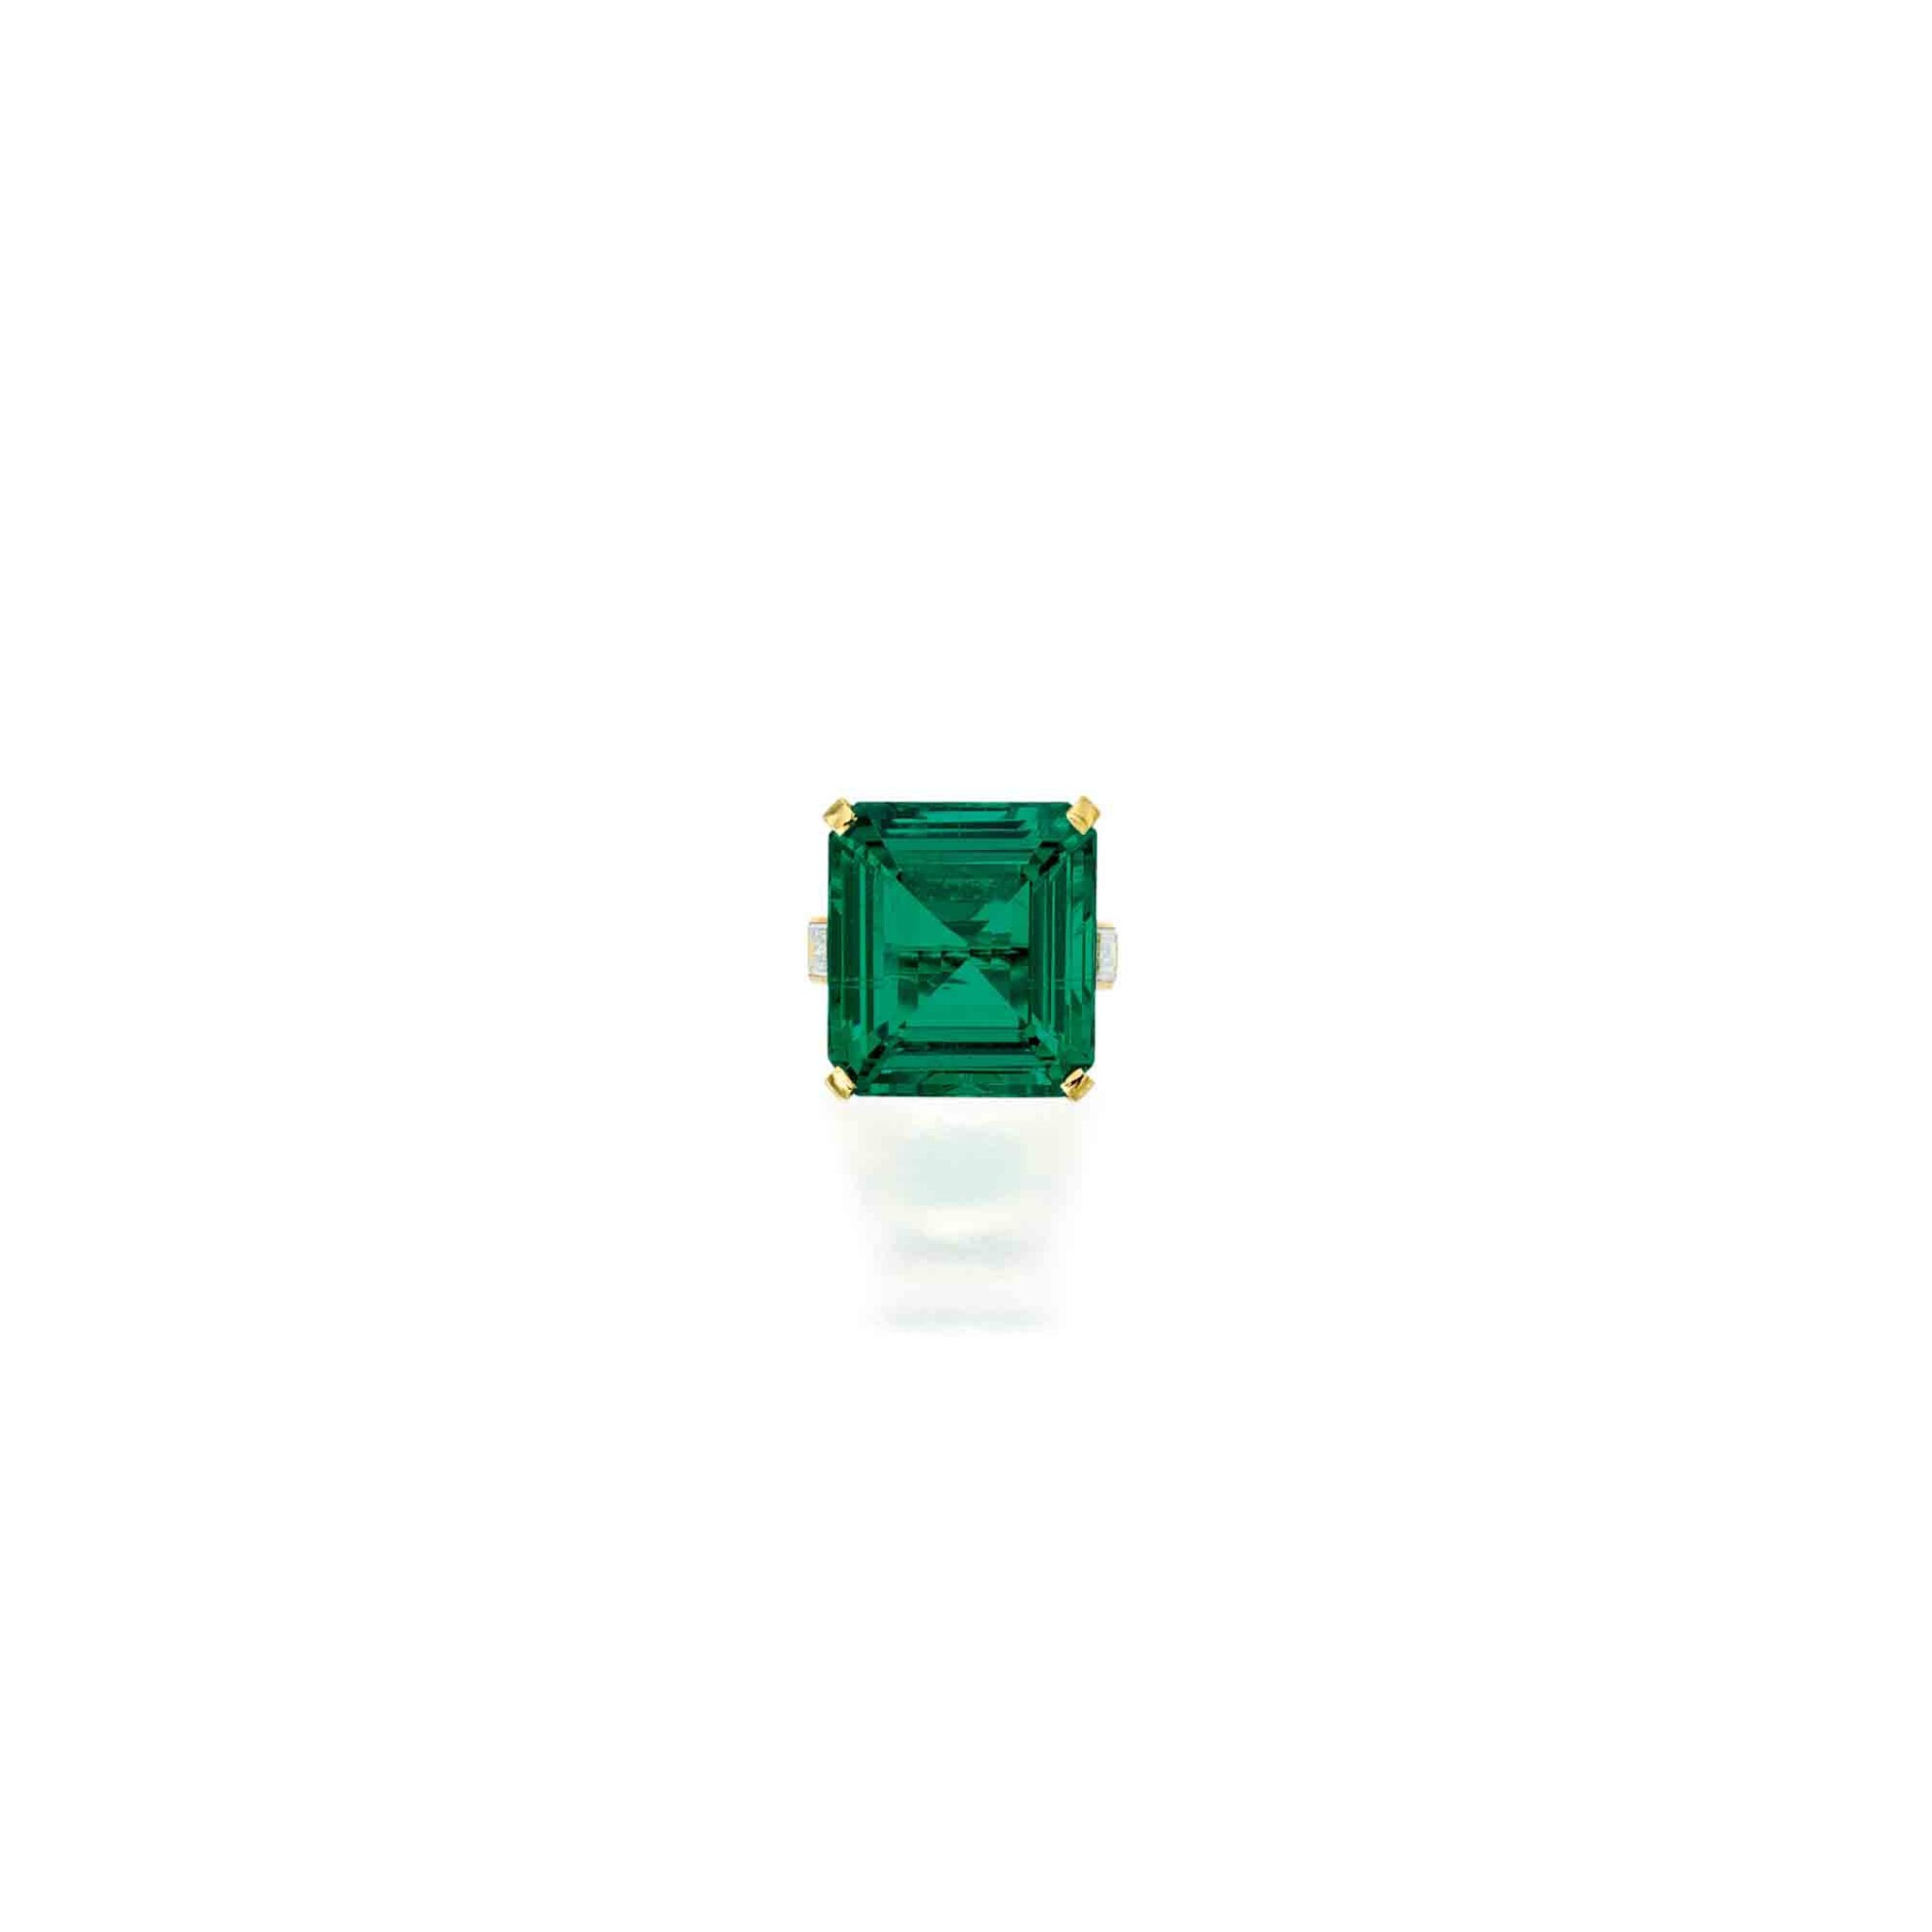 View full screen - View 1 of Lot 105. Cartier [卡地亞] | A Superb Emerald and Diamond Ring [祖母綠配鑽石戒指].